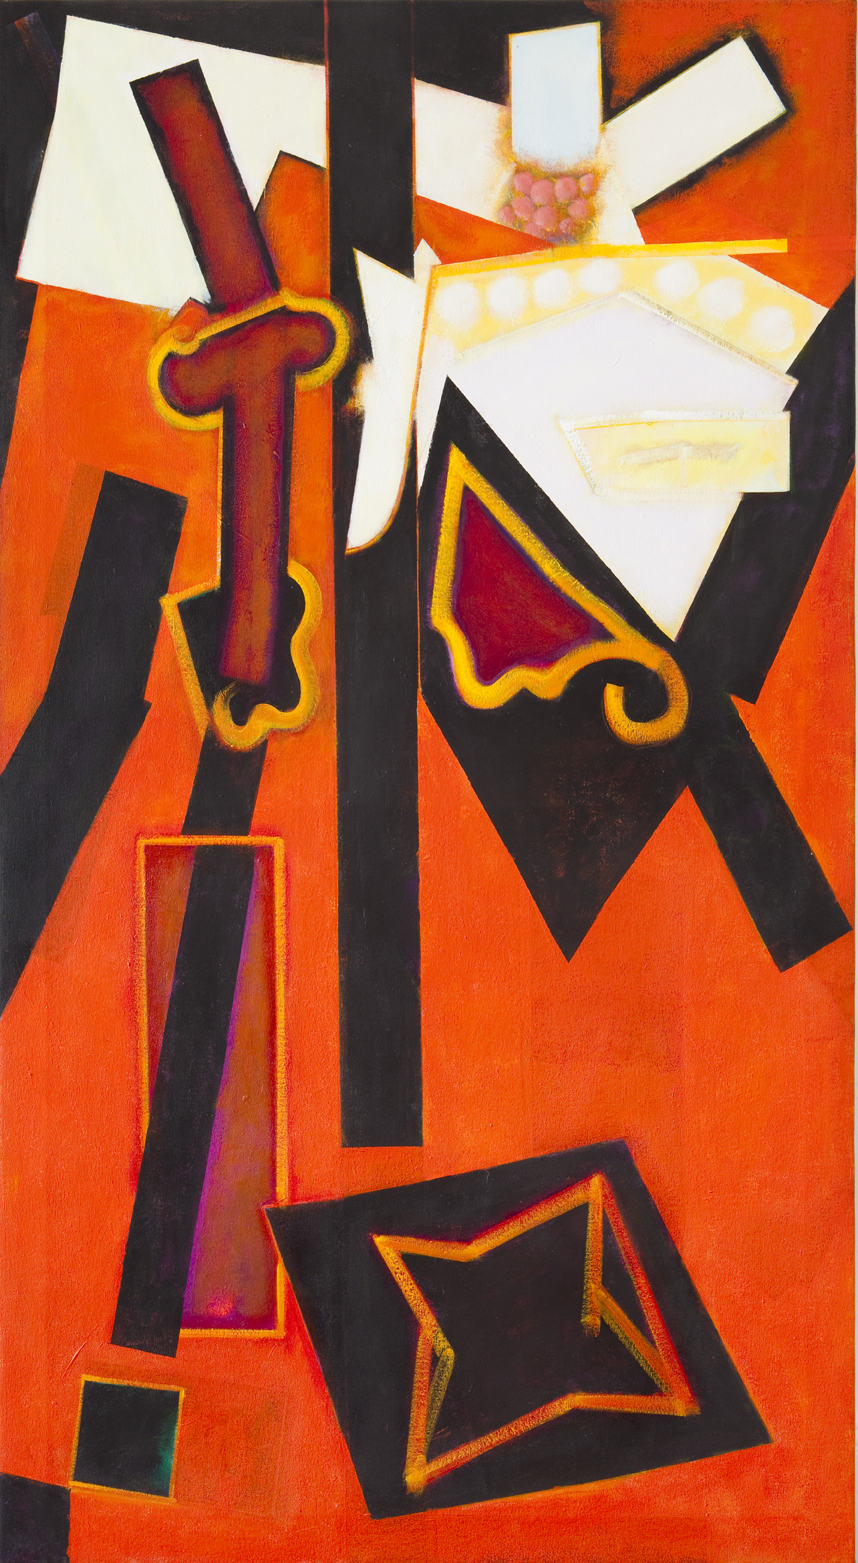 The Amorous Saints,  2011 Acrylic on canvas  69 x 39 1/2 inches